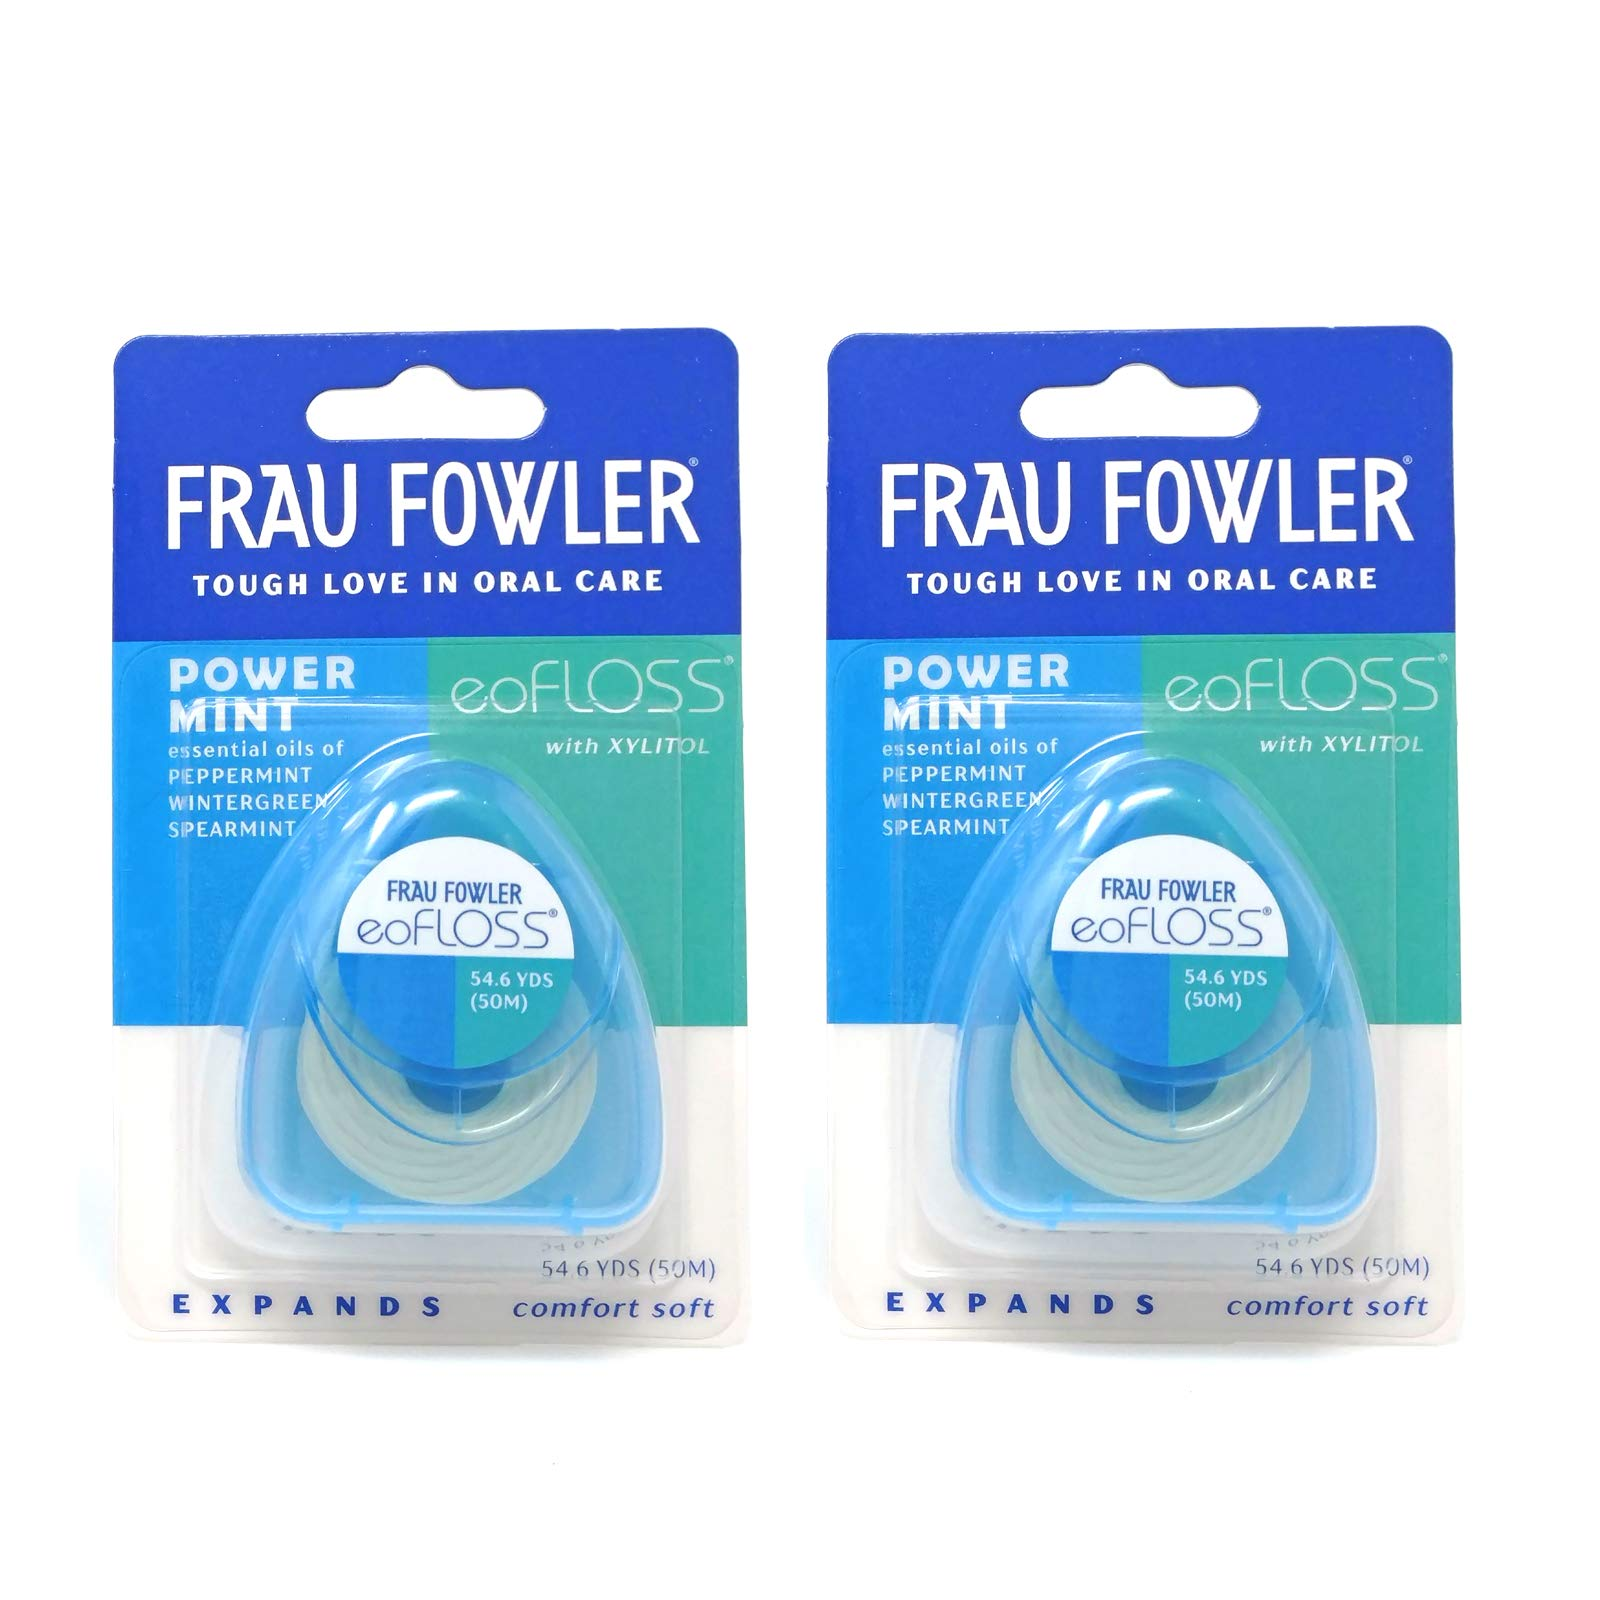 Frau Fowler eoFLOSS - Power Mint Dental Floss 2 Pack, Waxed, Expanding, Infused with Organic Essential Oils, 50m (54.6yds) each